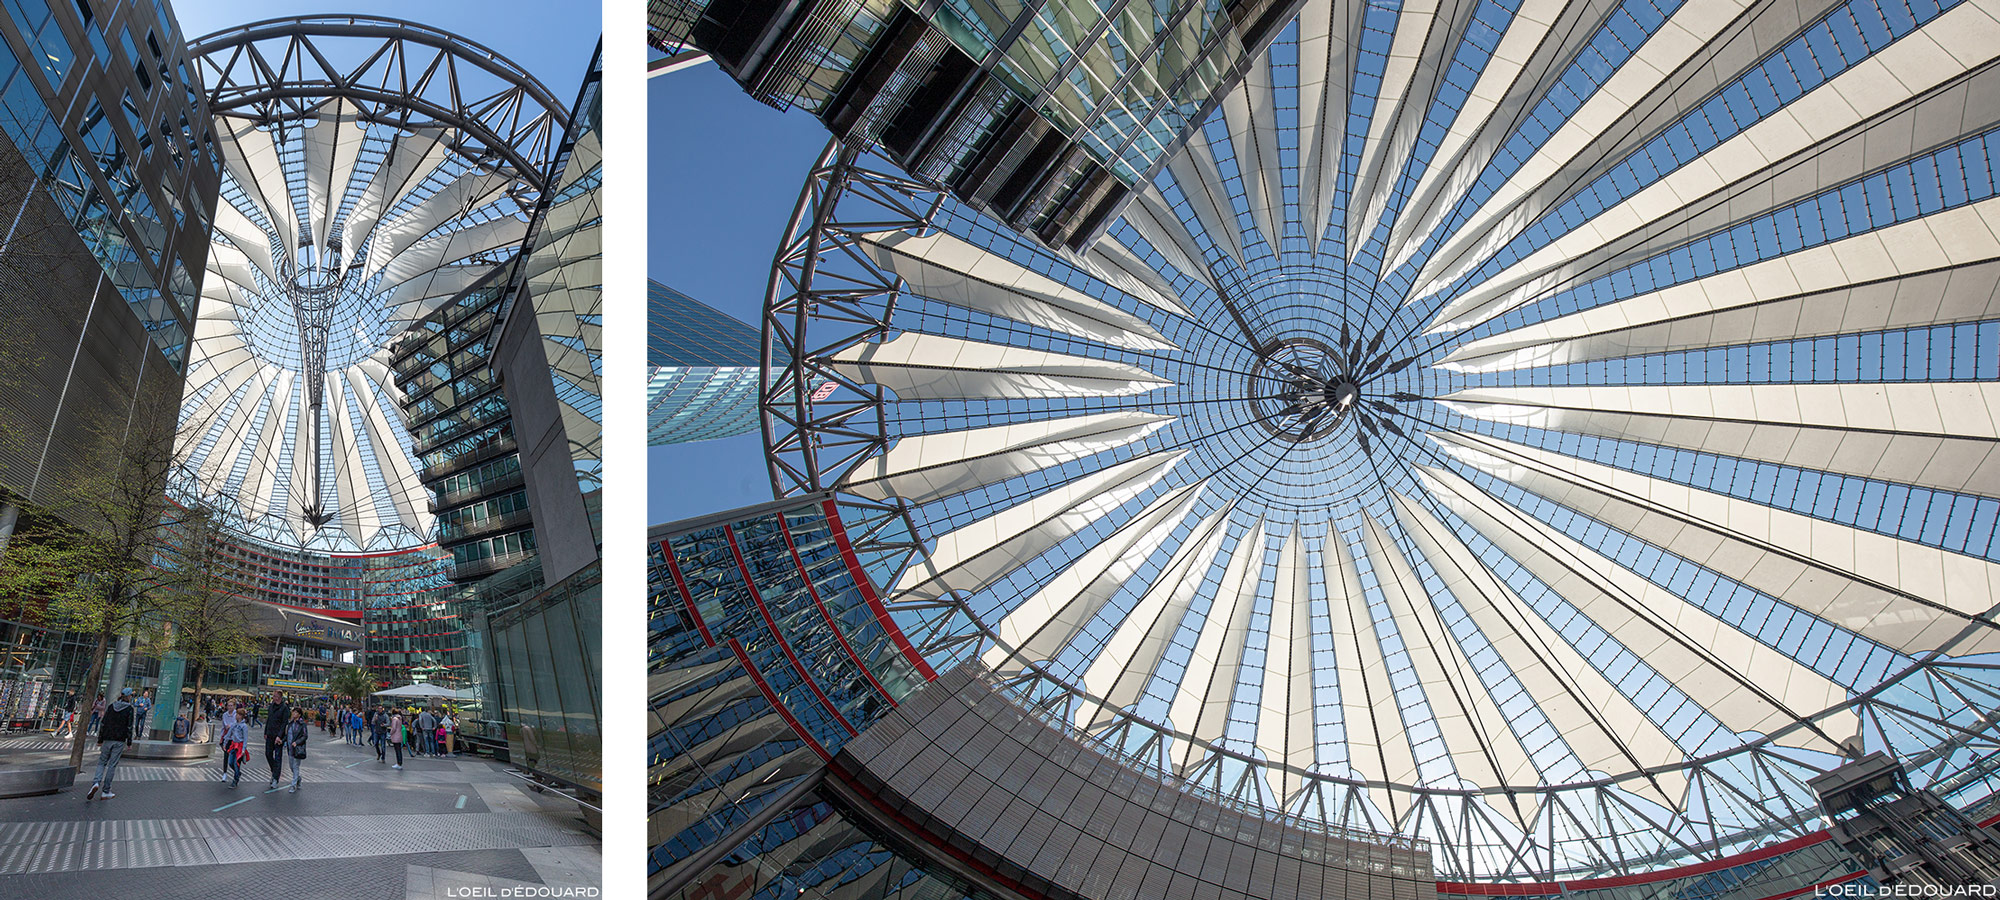 Sony Center Berlin Allemagne, Potsdamer Platz / Architecture Buildings Germany / Deutschland Helmut Jahn architecte